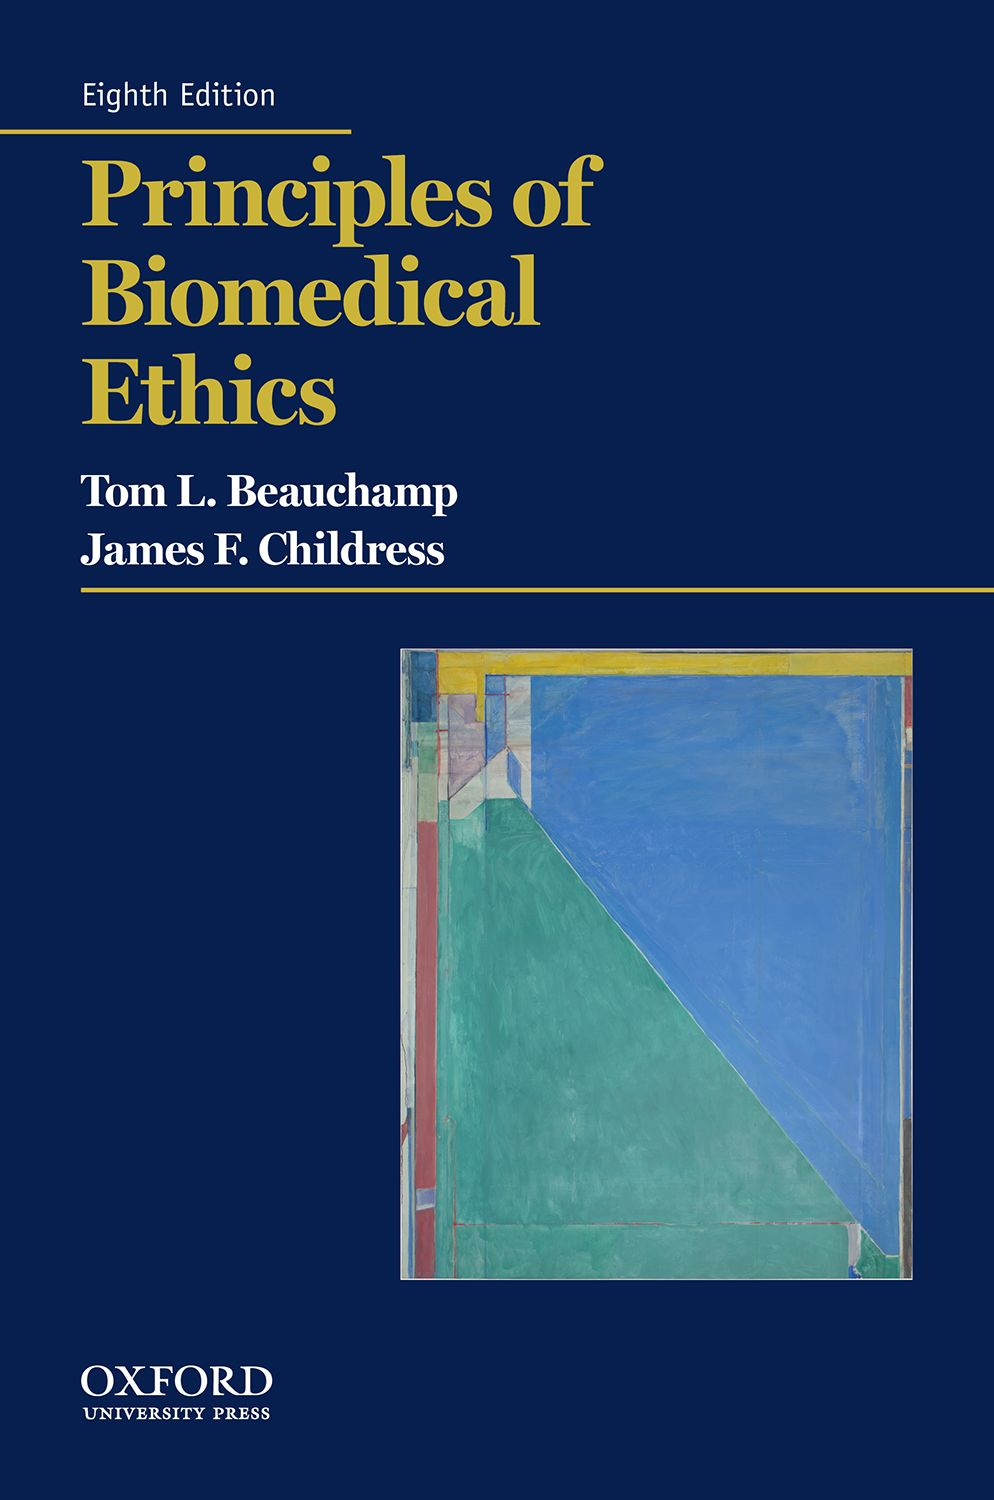 Principles of Biomedical Ethics 8e